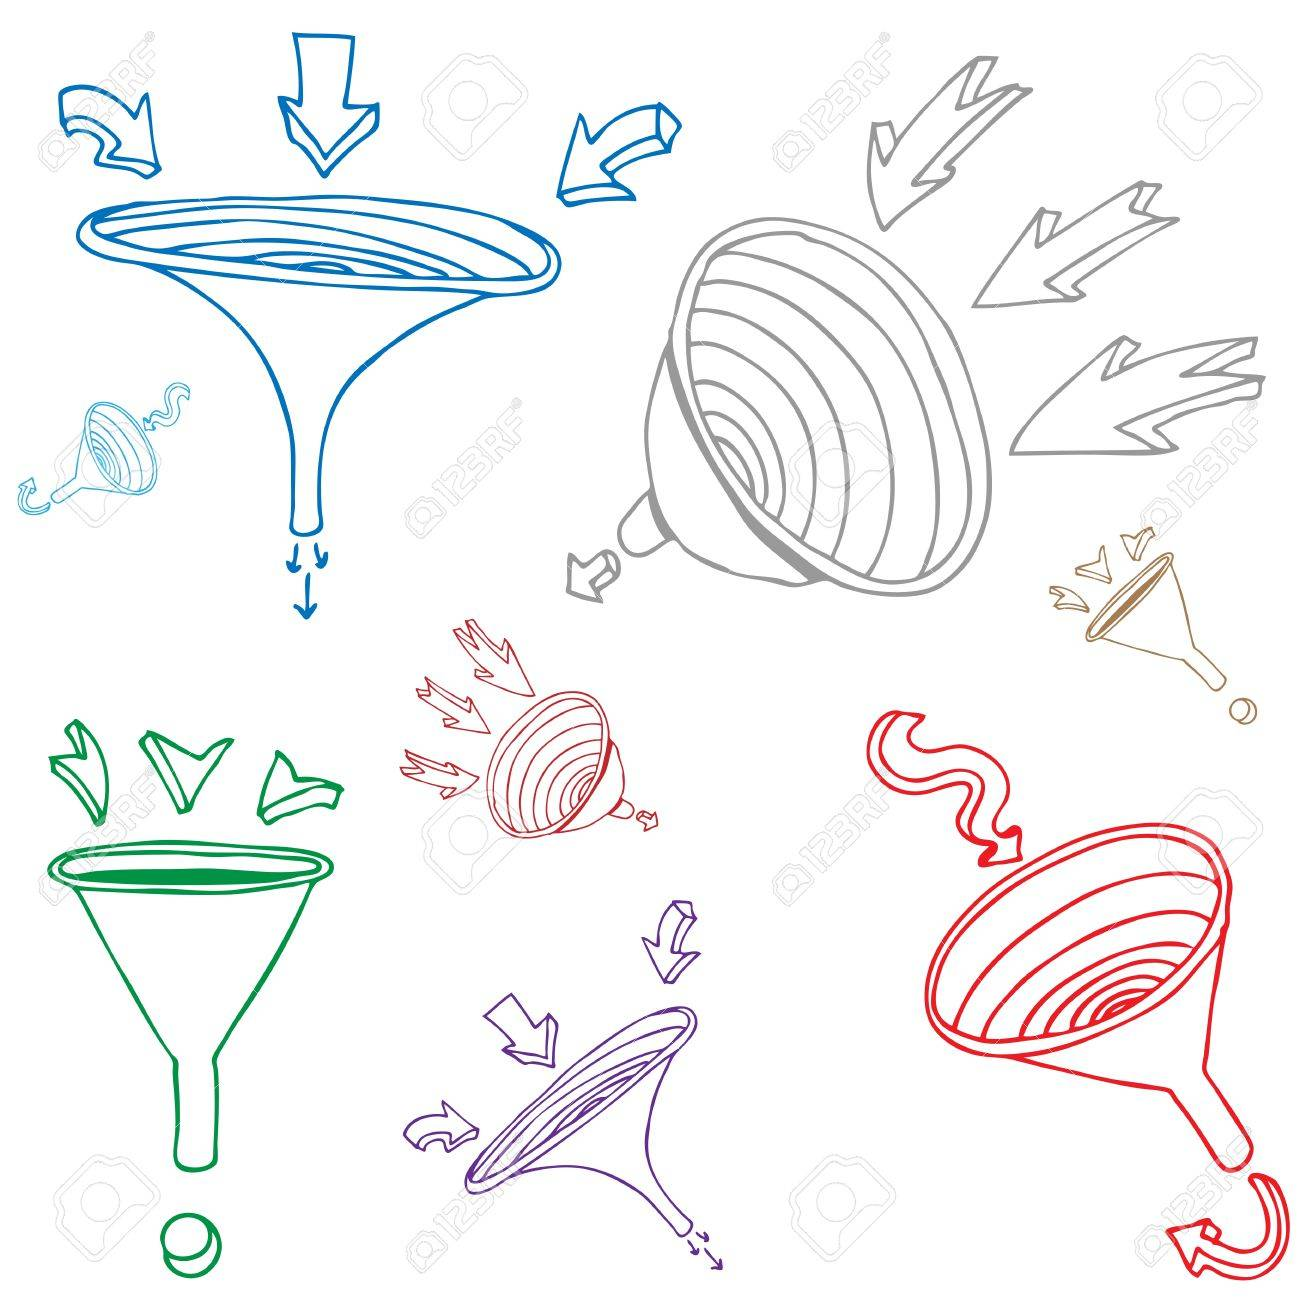 1300x1300 An Image Of A Funnel Arrow Drawing Set. Royalty Free Cliparts